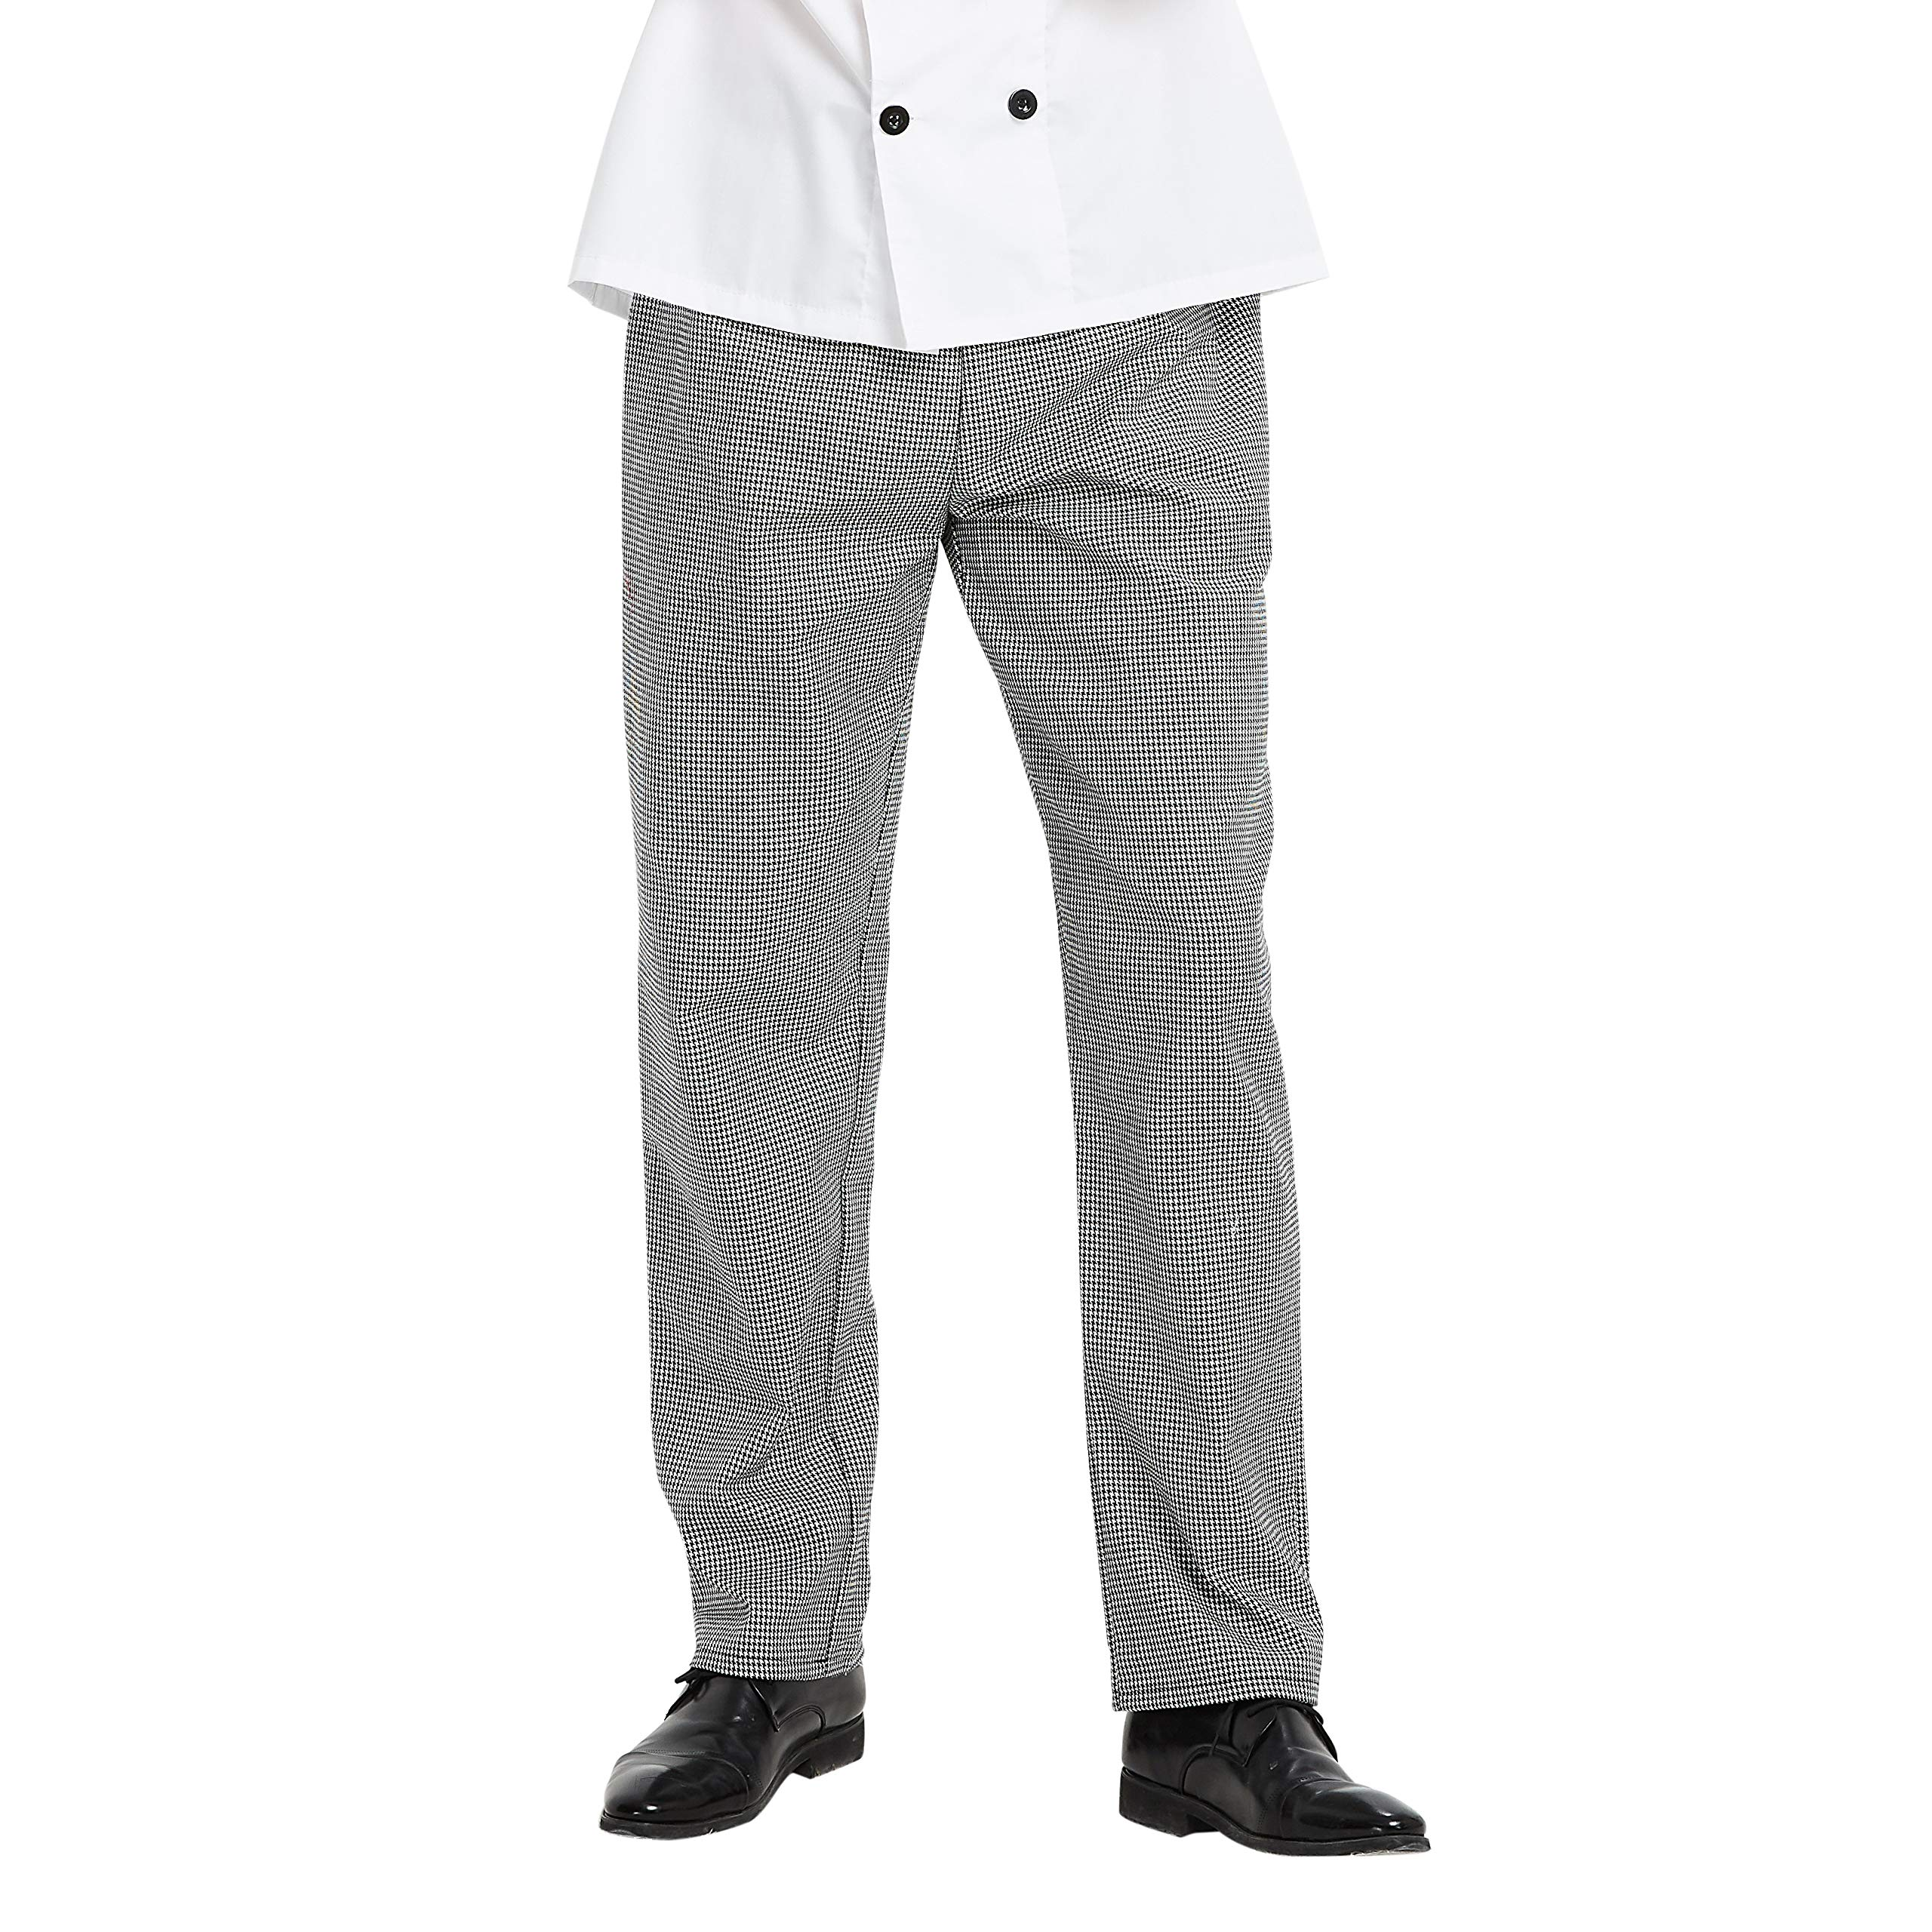 TOPTIE Men's Black Cargo Style Kitchen Work Chef Pant